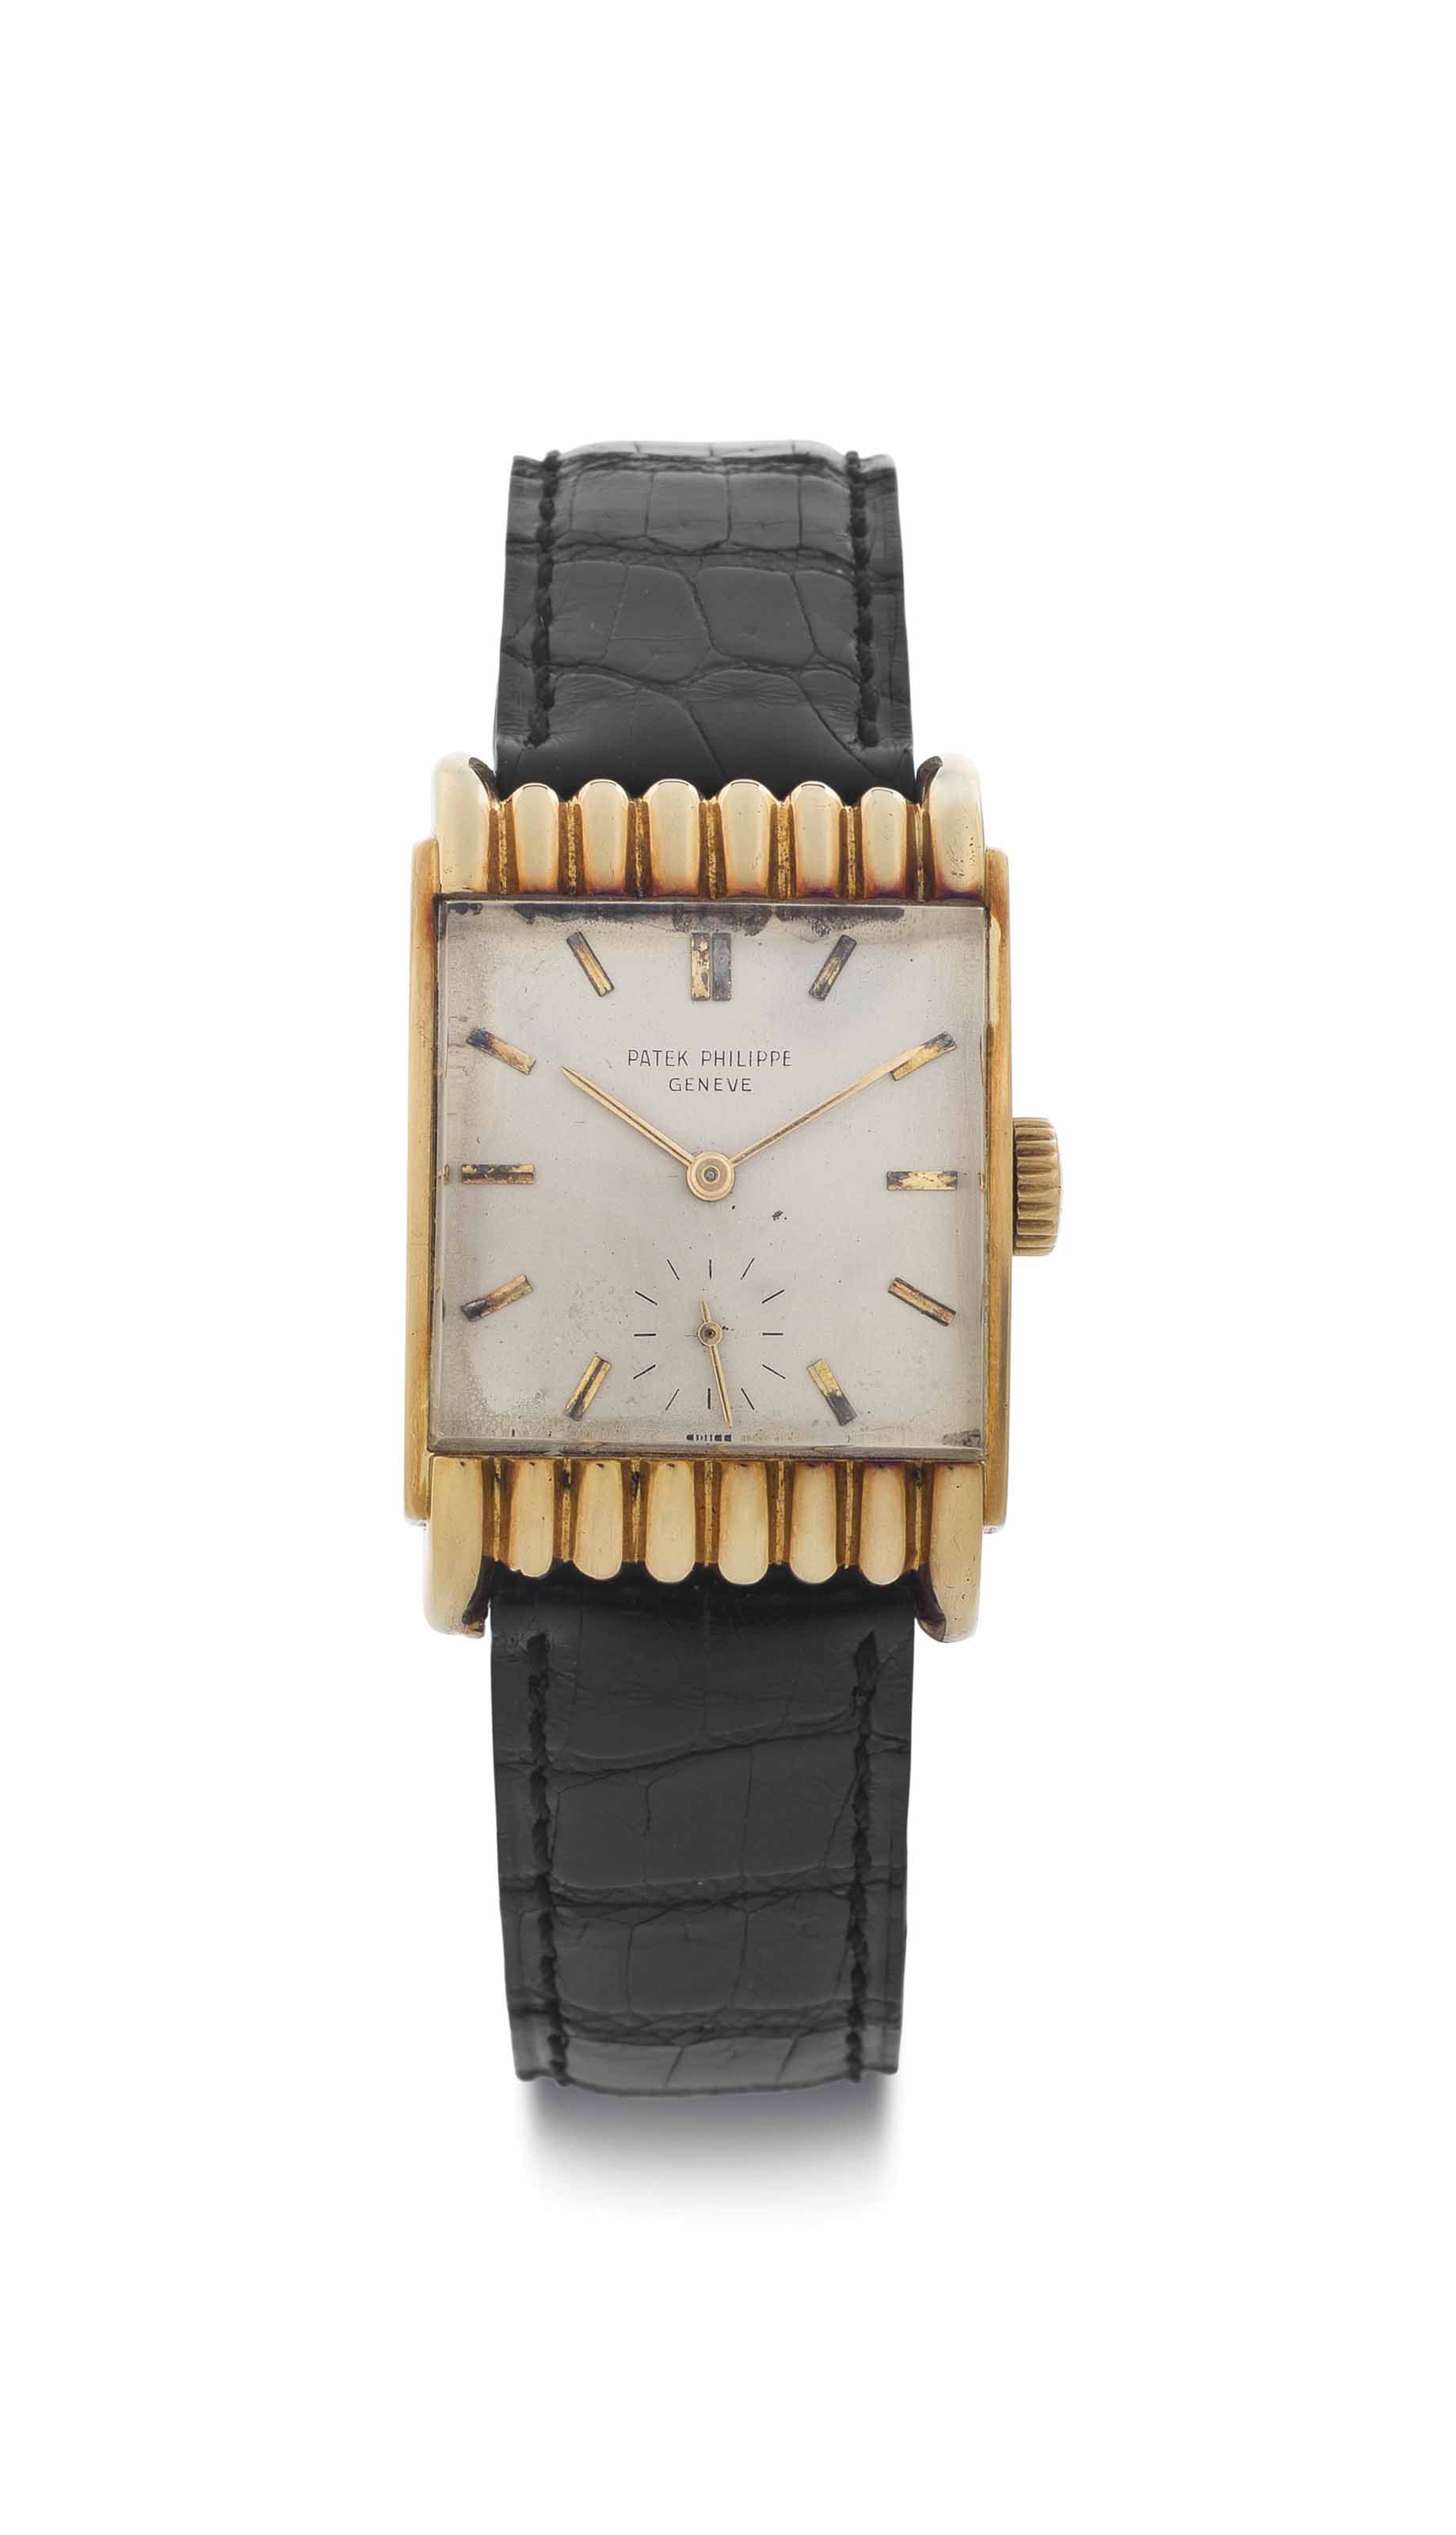 Patek Philippe. An Unusual 18k Gold Wristwatch with Scalloped Lugs